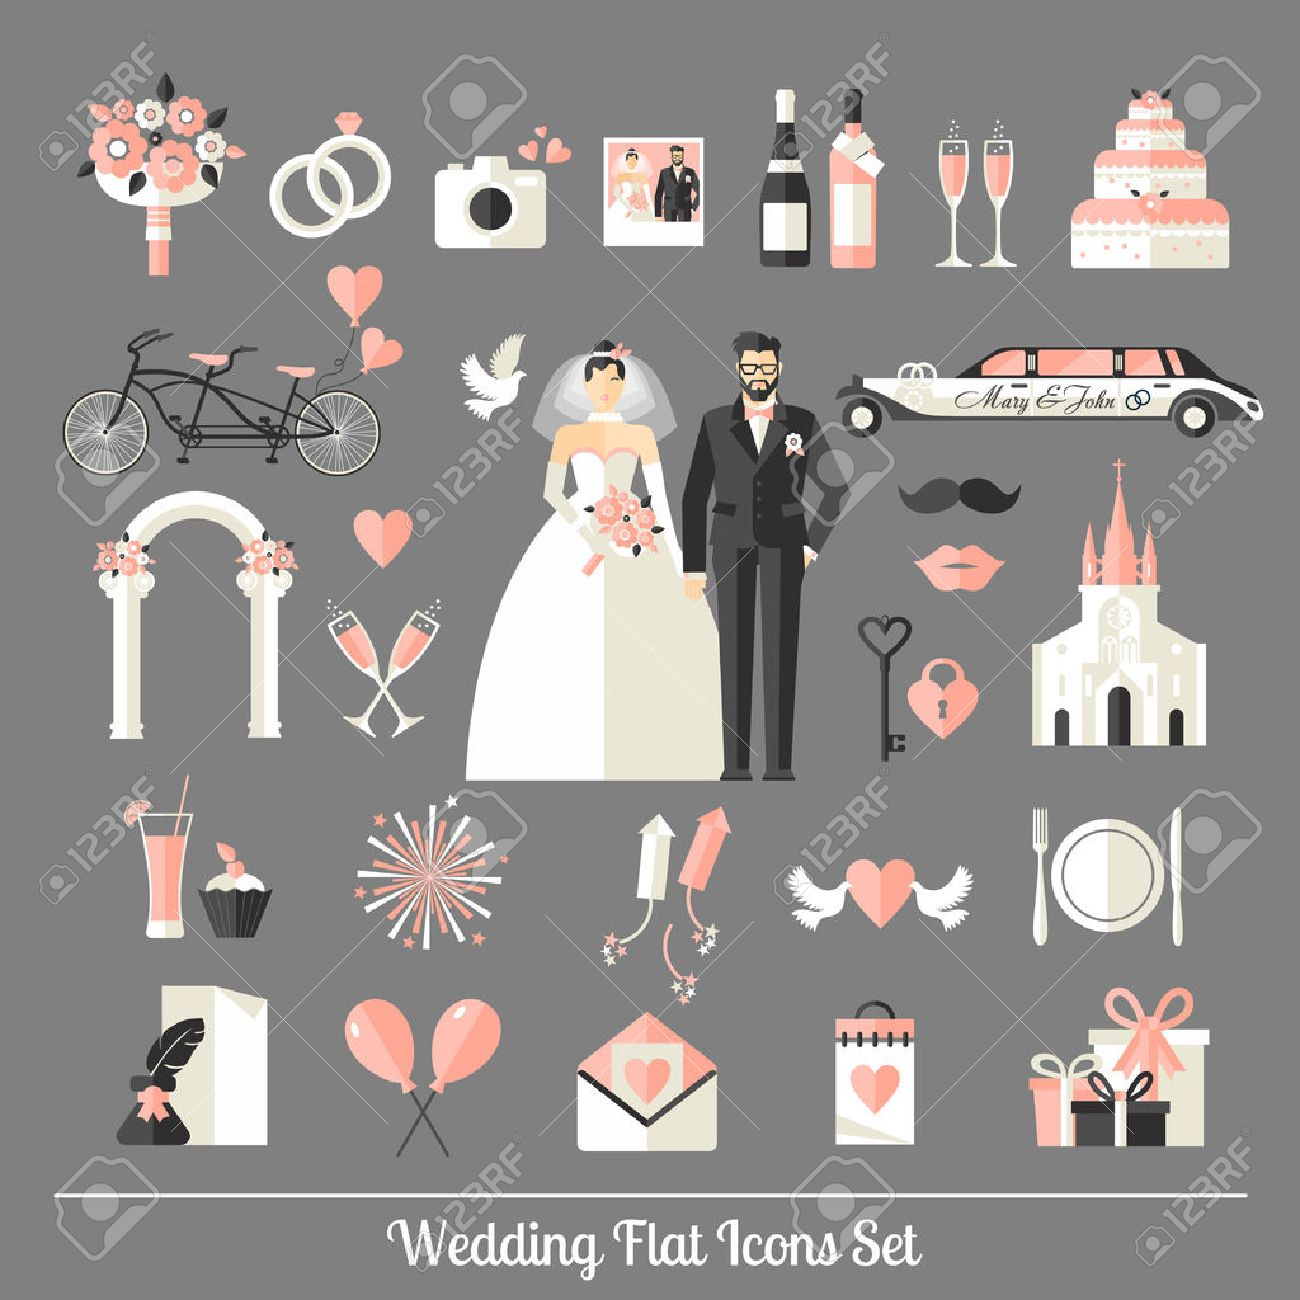 Wedding symbols set. Flat icons for your wedding design. Stock Vector - 43668505